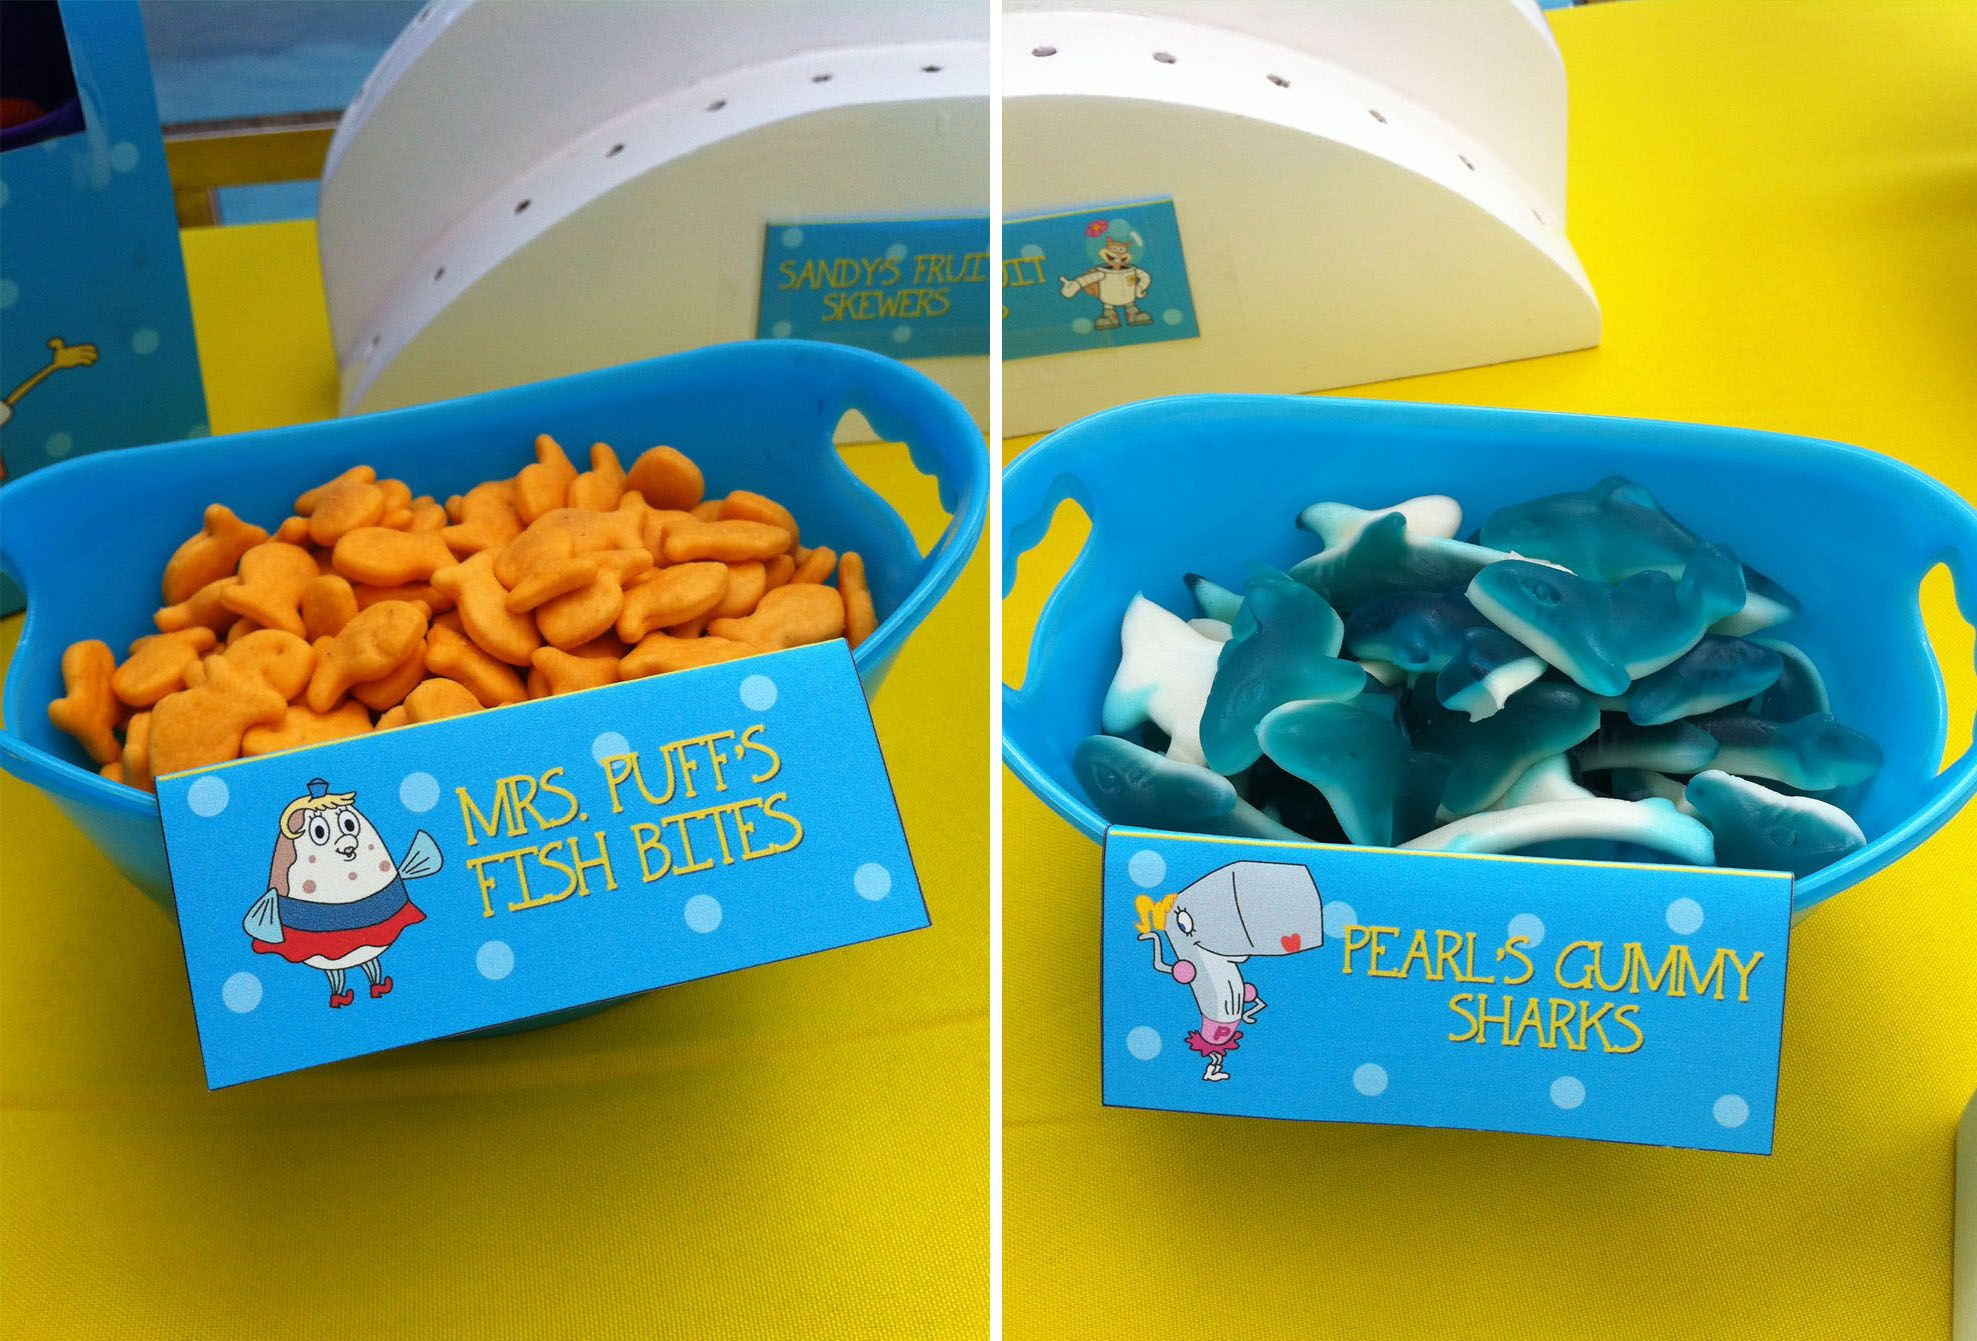 spongebob birthday party food ideas fish bites and gummy sharks